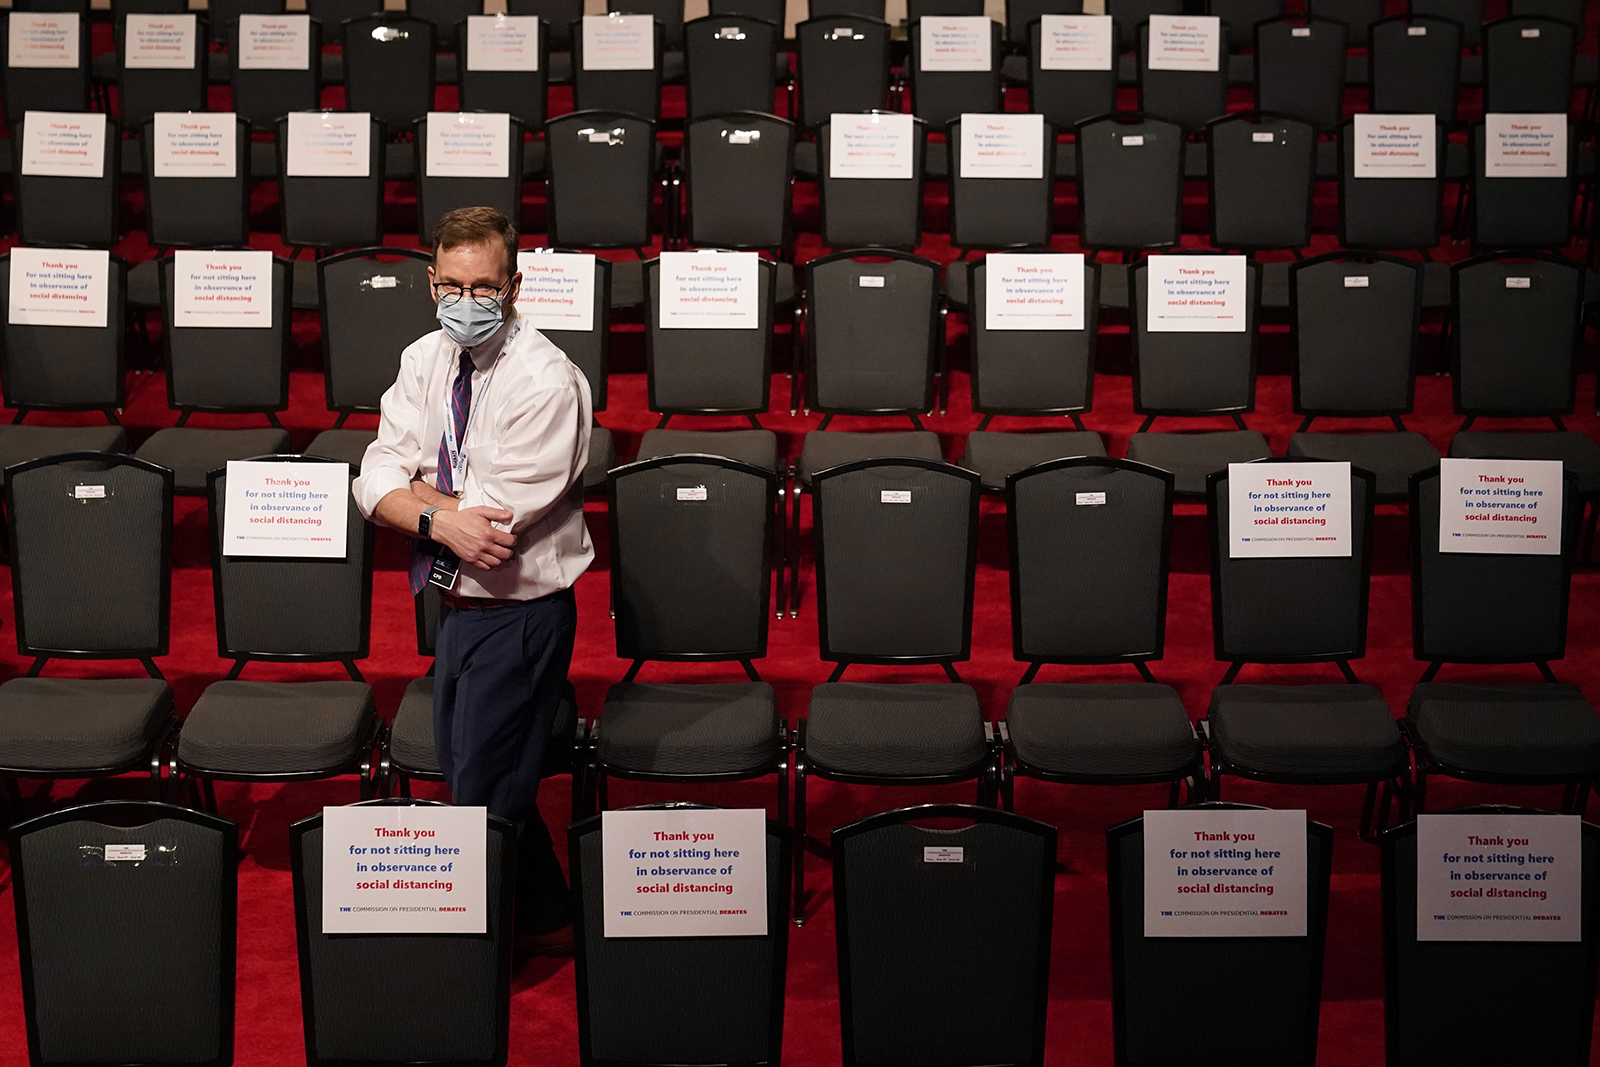 A debate official walks past spectator seating marked with signs observing social distancing requirements for the final debate between President Donald Trump and Democratic presidential candidate Joe Biden at Belmont University on Thursday.